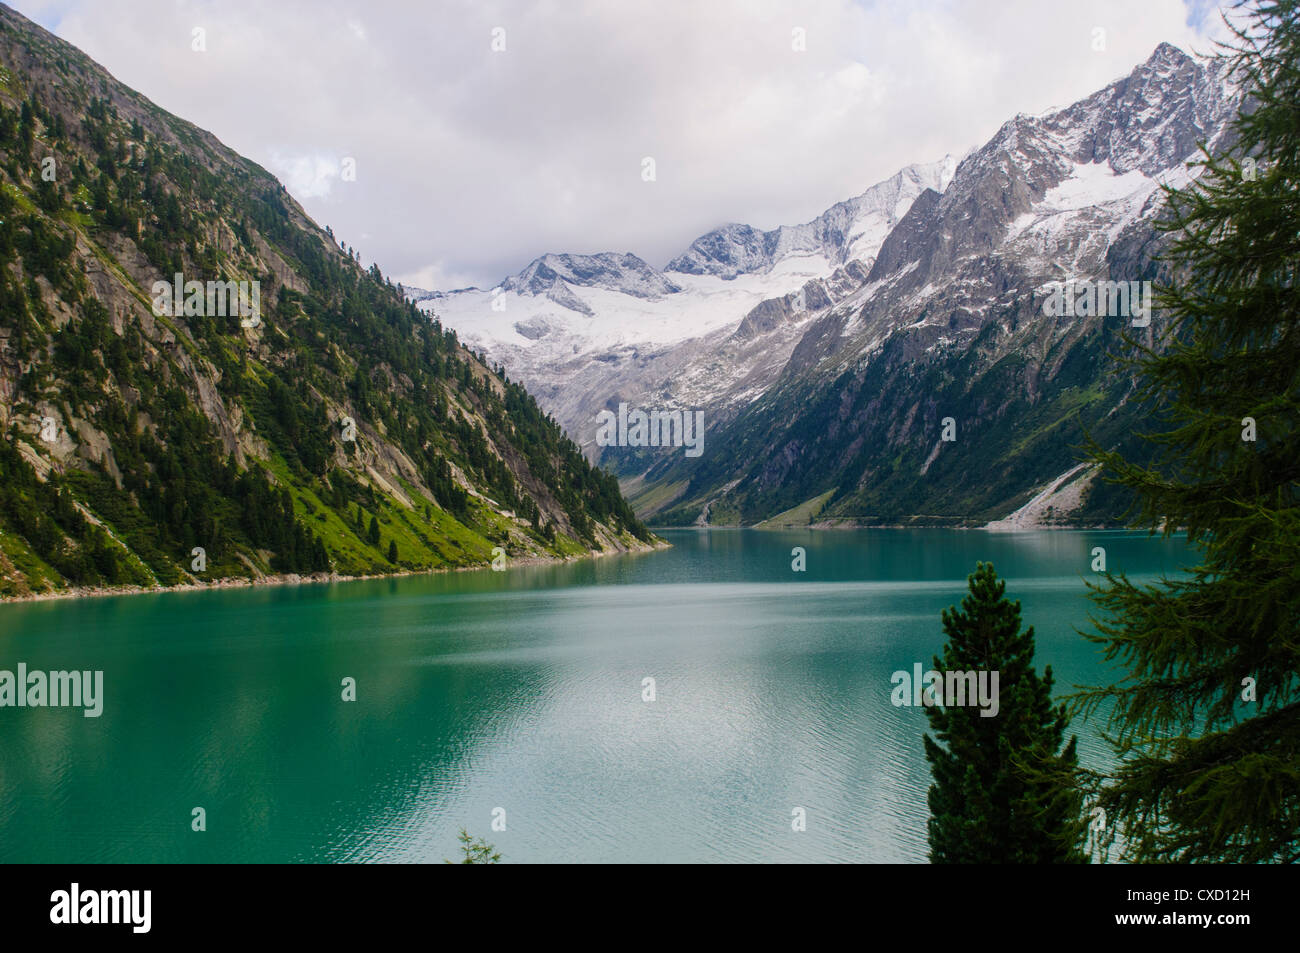 Austria, Zillertal High Alpine nature Park Hochgebirgs Naturpark Schlegeis dam and reservoir Stock Photo